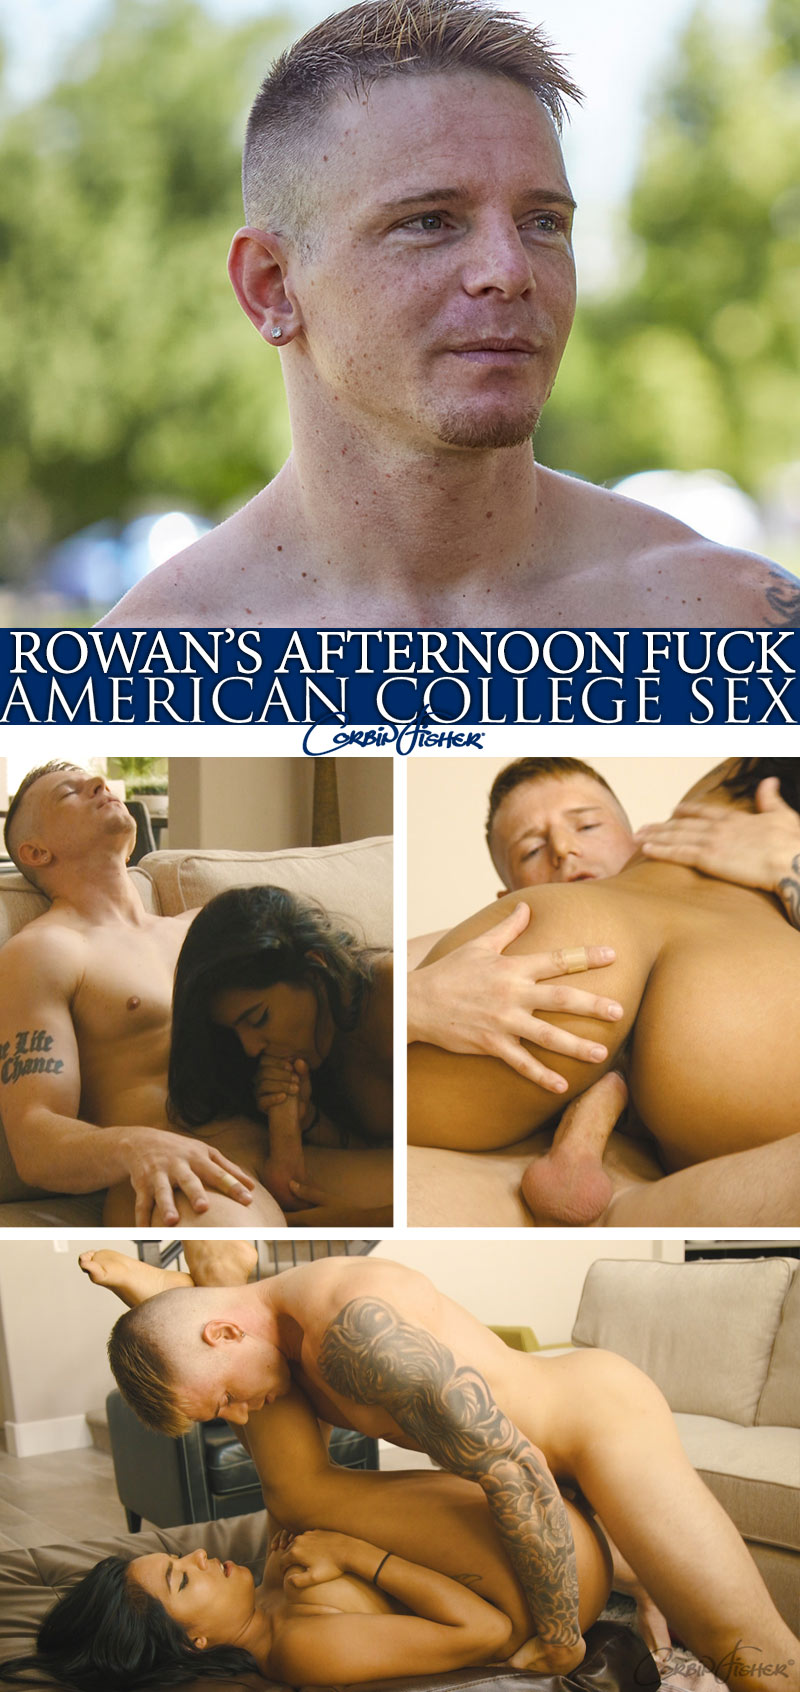 Rowan's Afternoon Fuck at AmateurCollegeSex